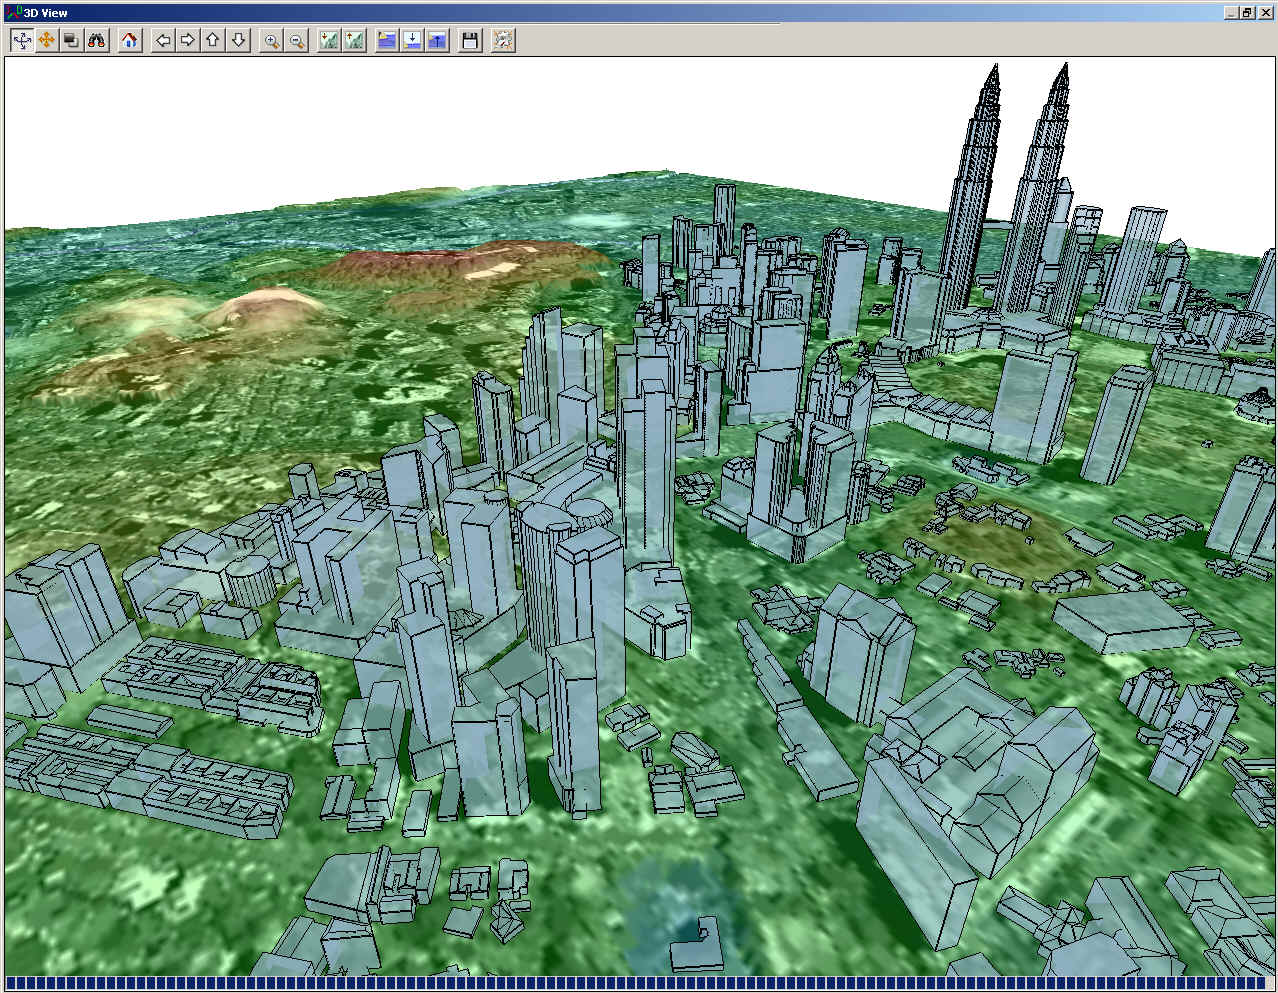 Global Mapper's 3D View window displaying a terrain surface with 3D building vectors for Kuala Lumpur, Malaysia.